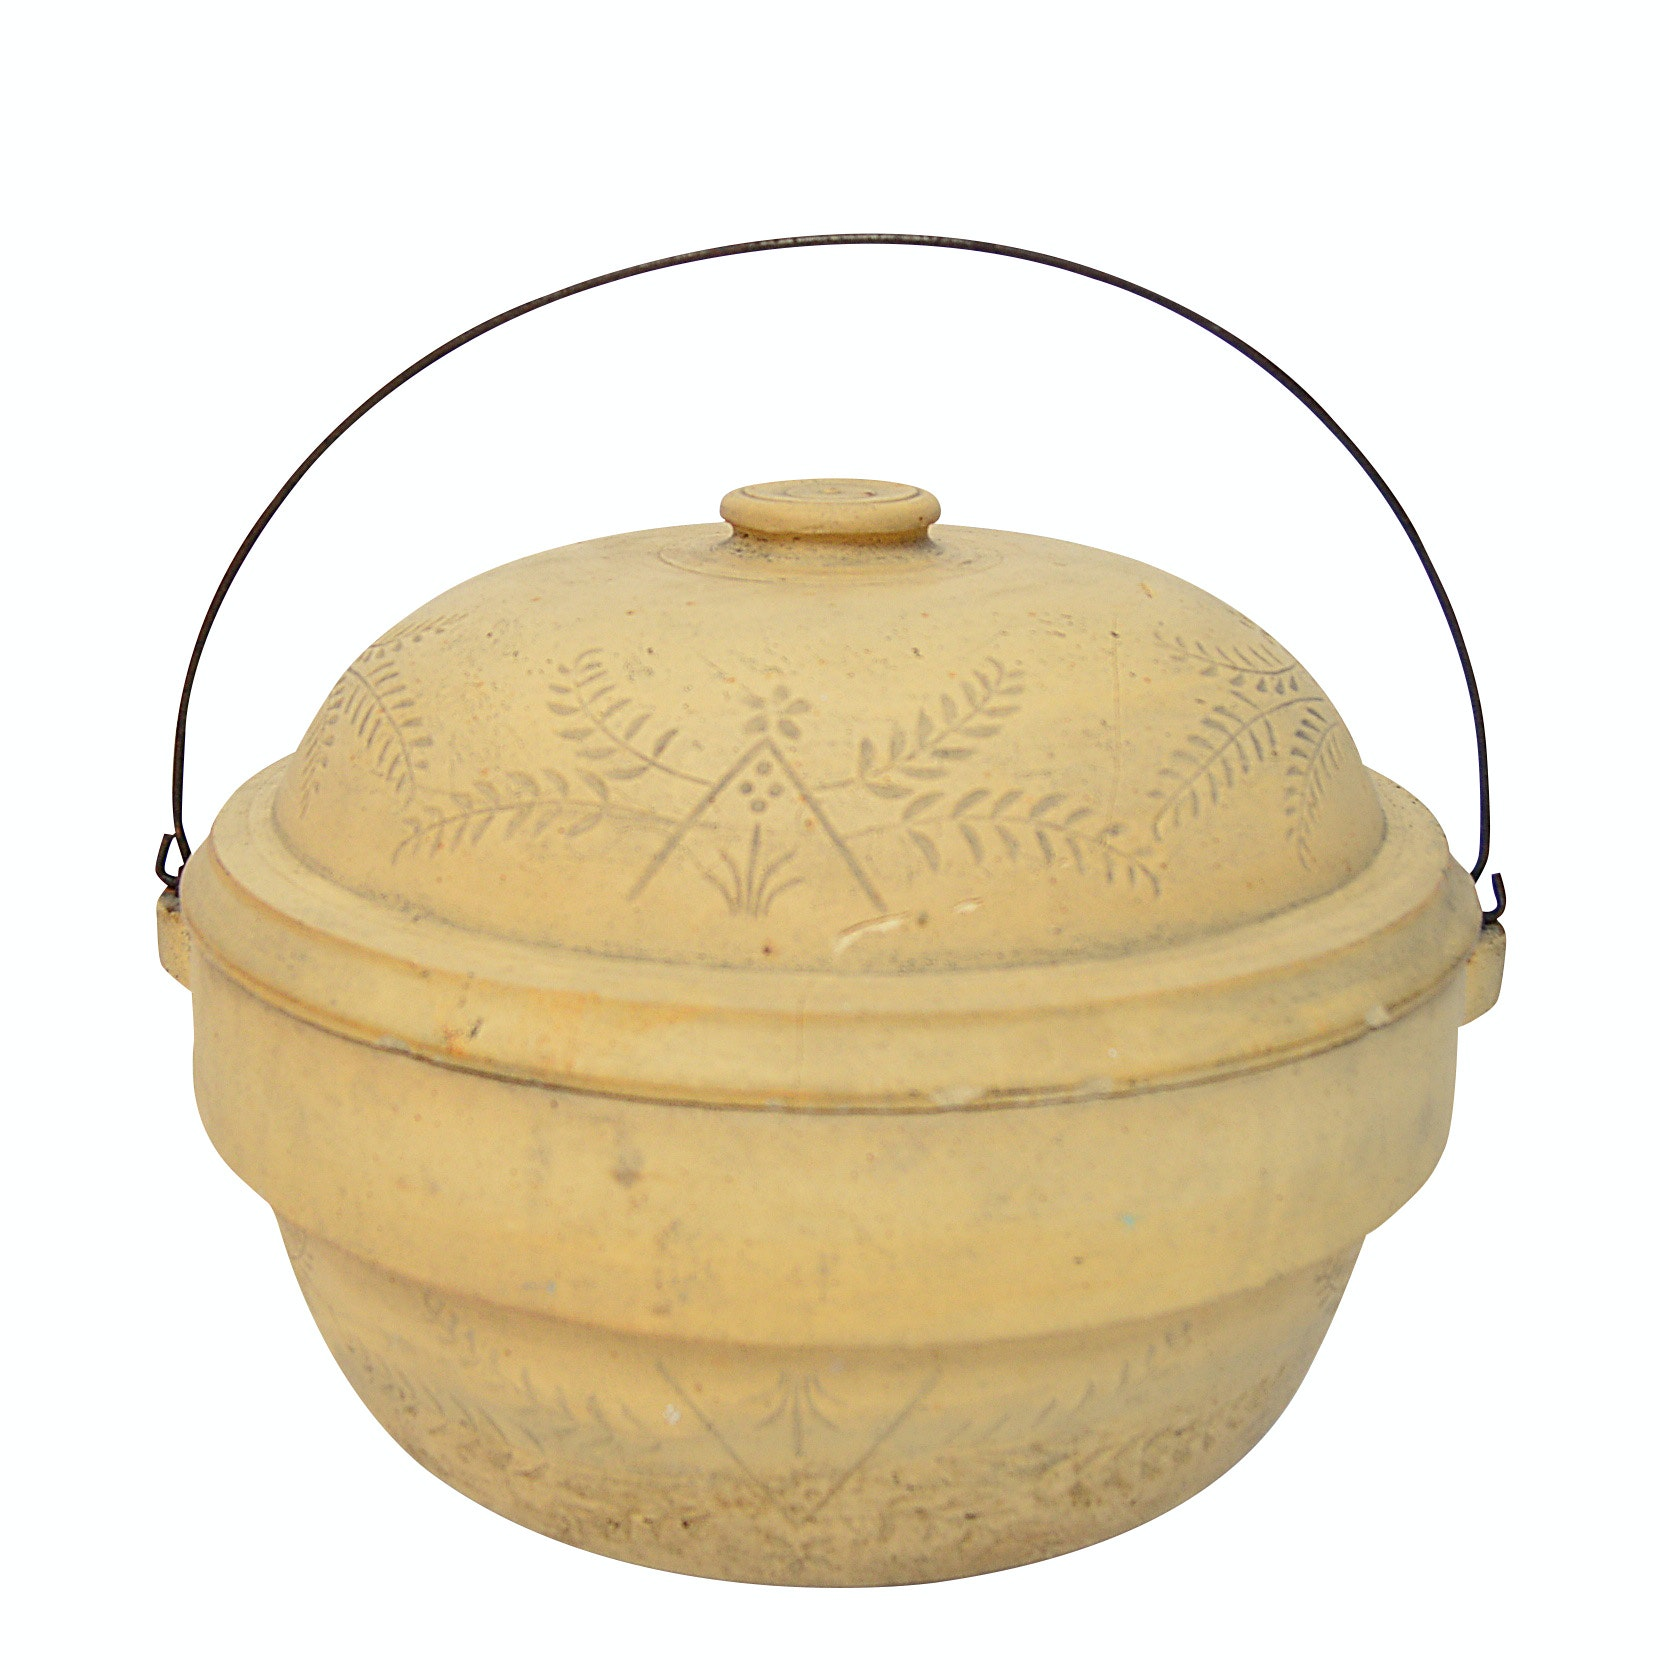 Sanitary Stoneware Fire Clay Dutch Oven, Early 20th Century